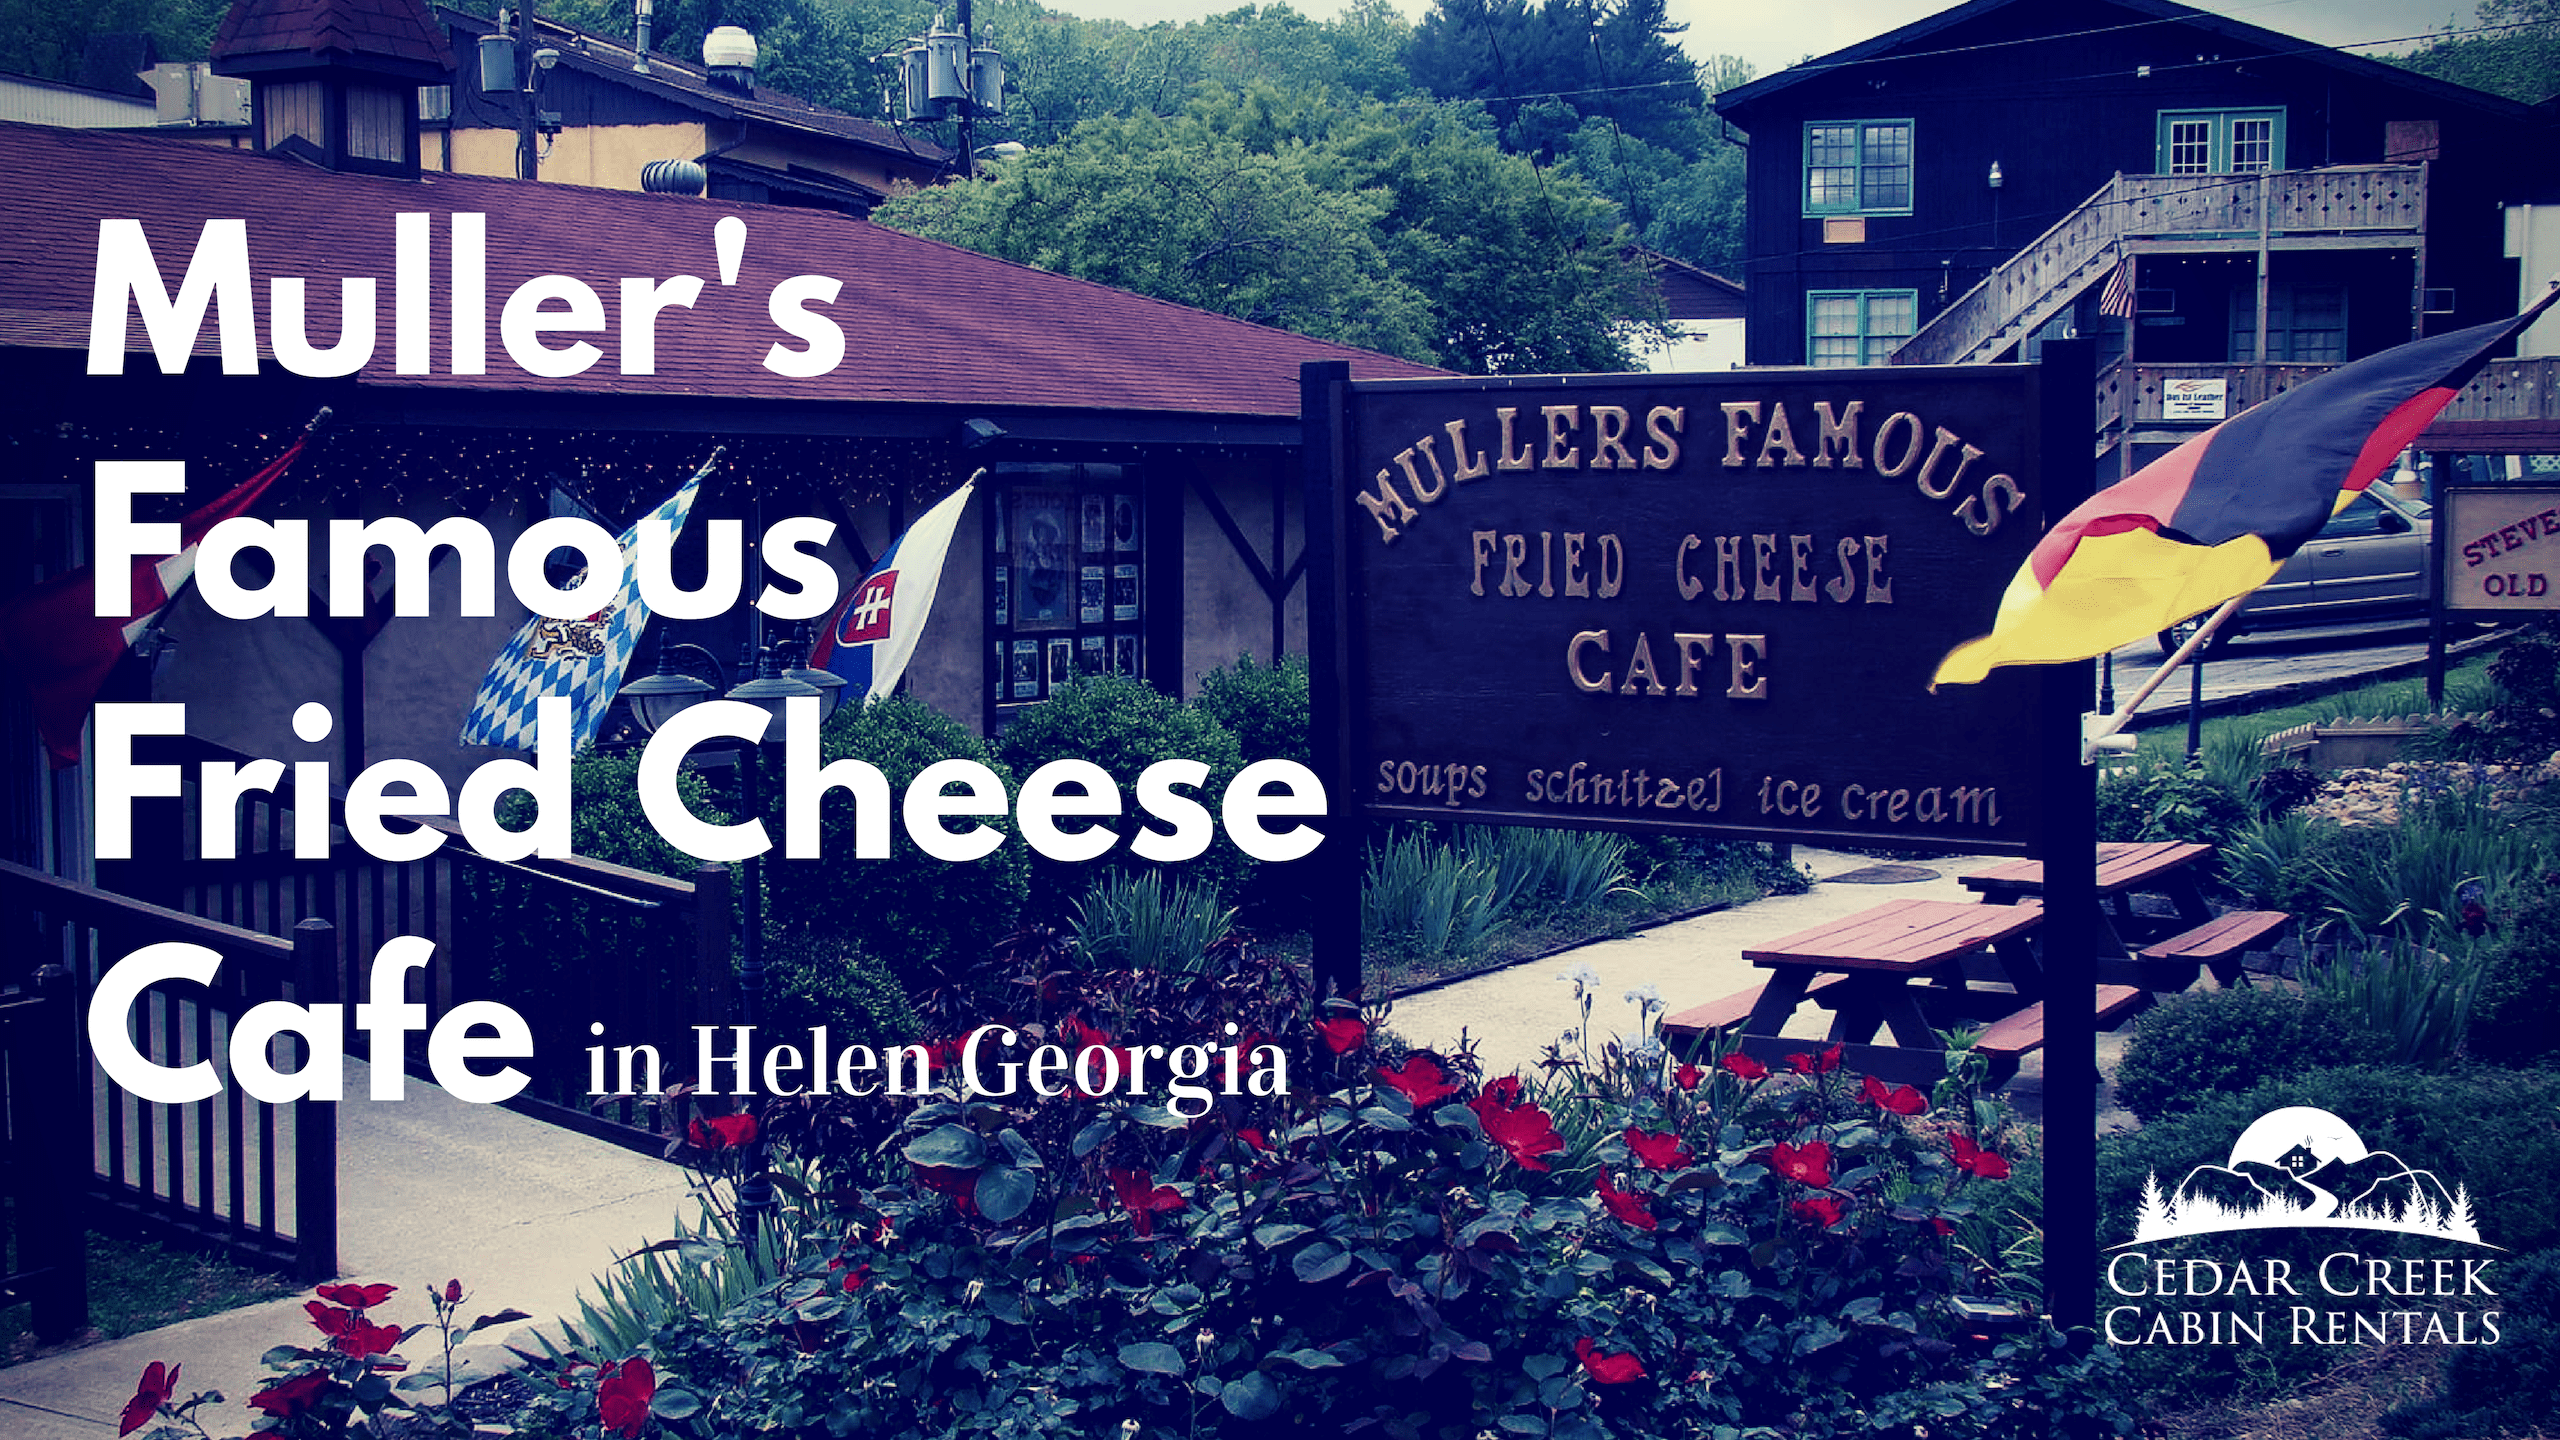 Mullers-Famous-Fried-Cheese-Cafe-Sneak-Peak-Cedar-Creek-Cabin-Rentals-Helen-Georgia-Banner